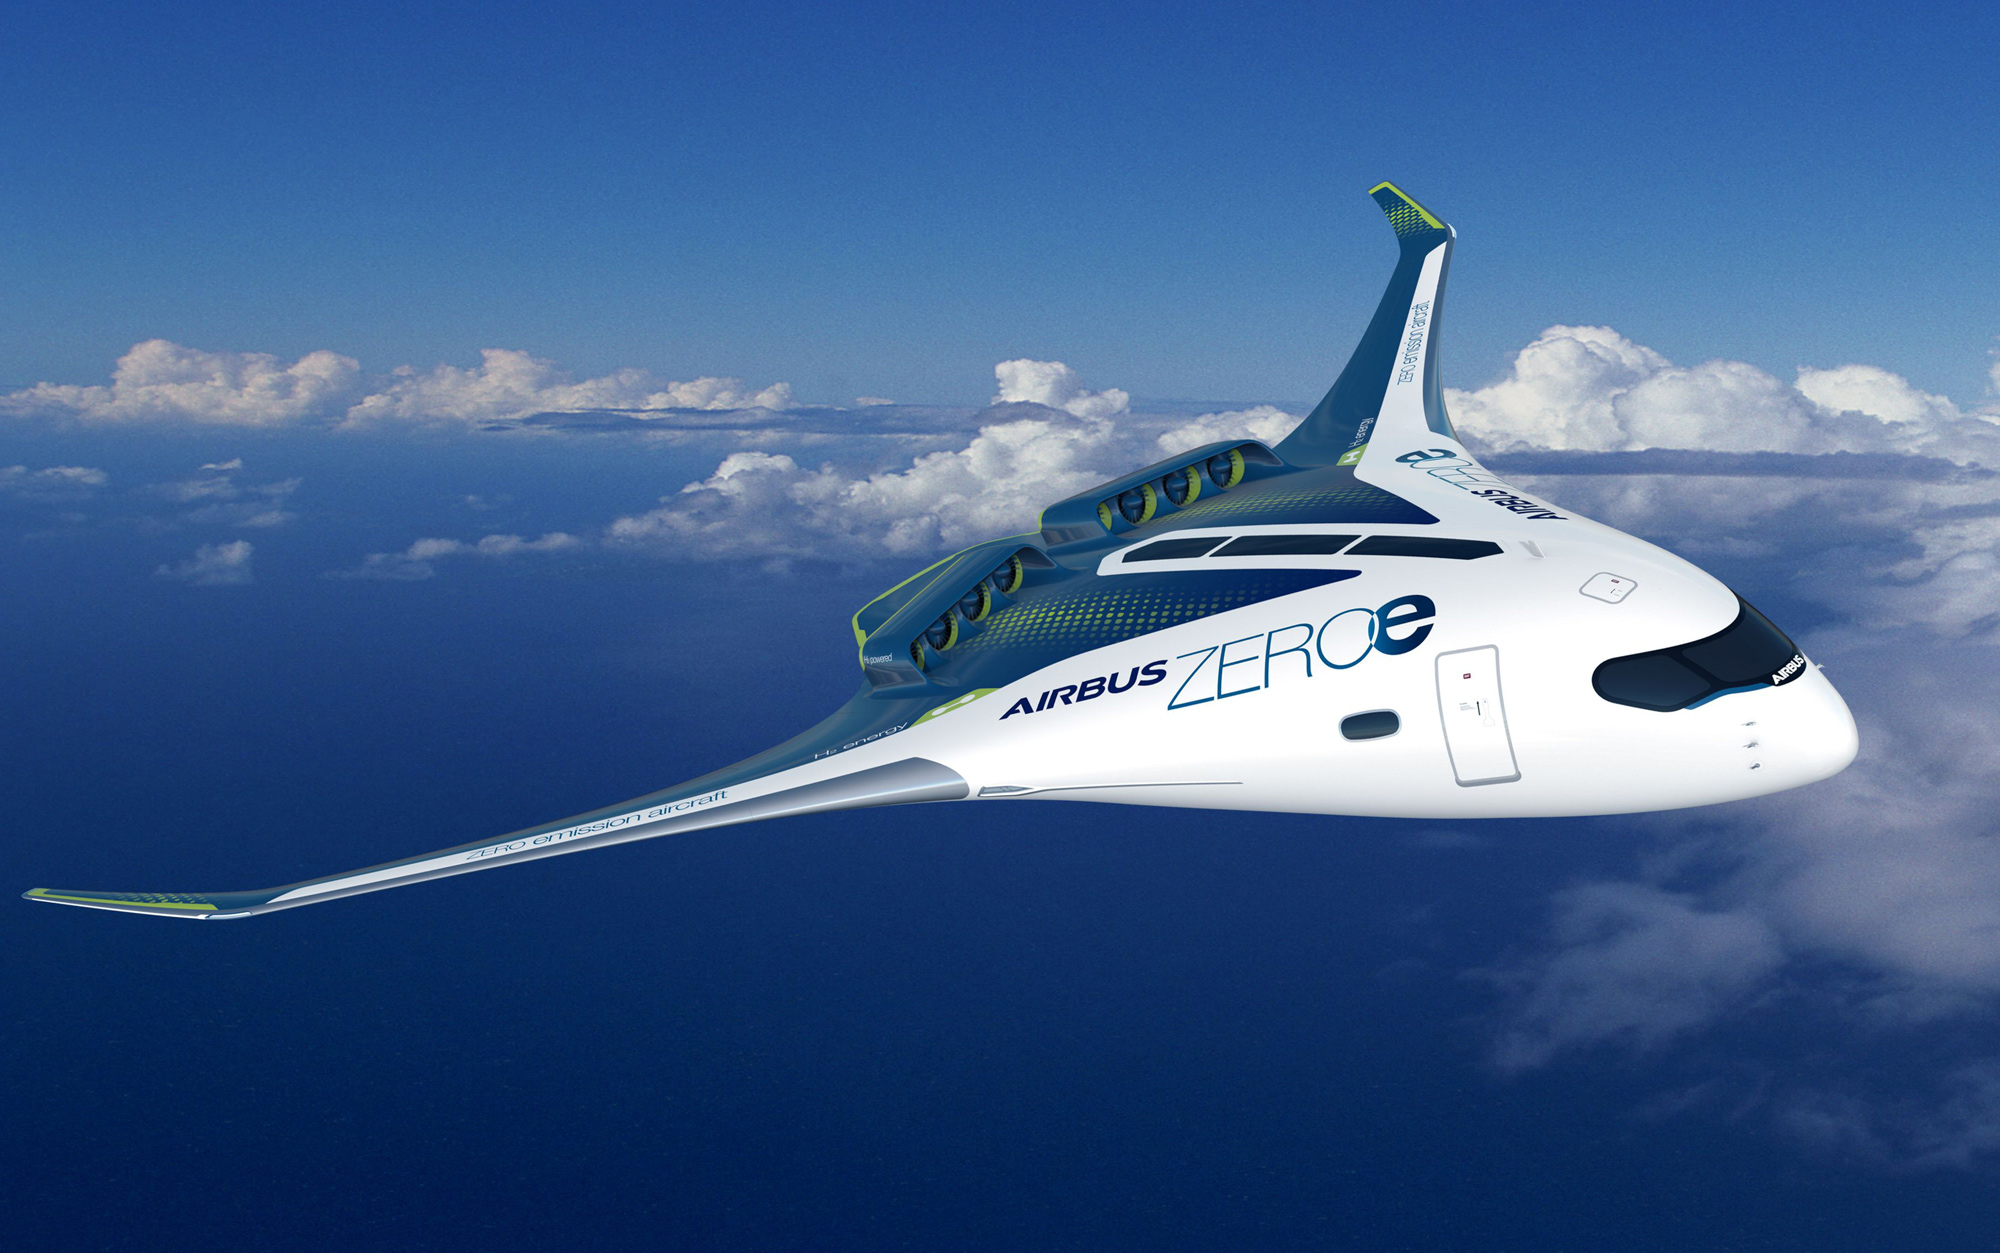 This image shows concept art for a new hydrogen-powered passenger plane being designed by Airbus SE. The plan is a sort of